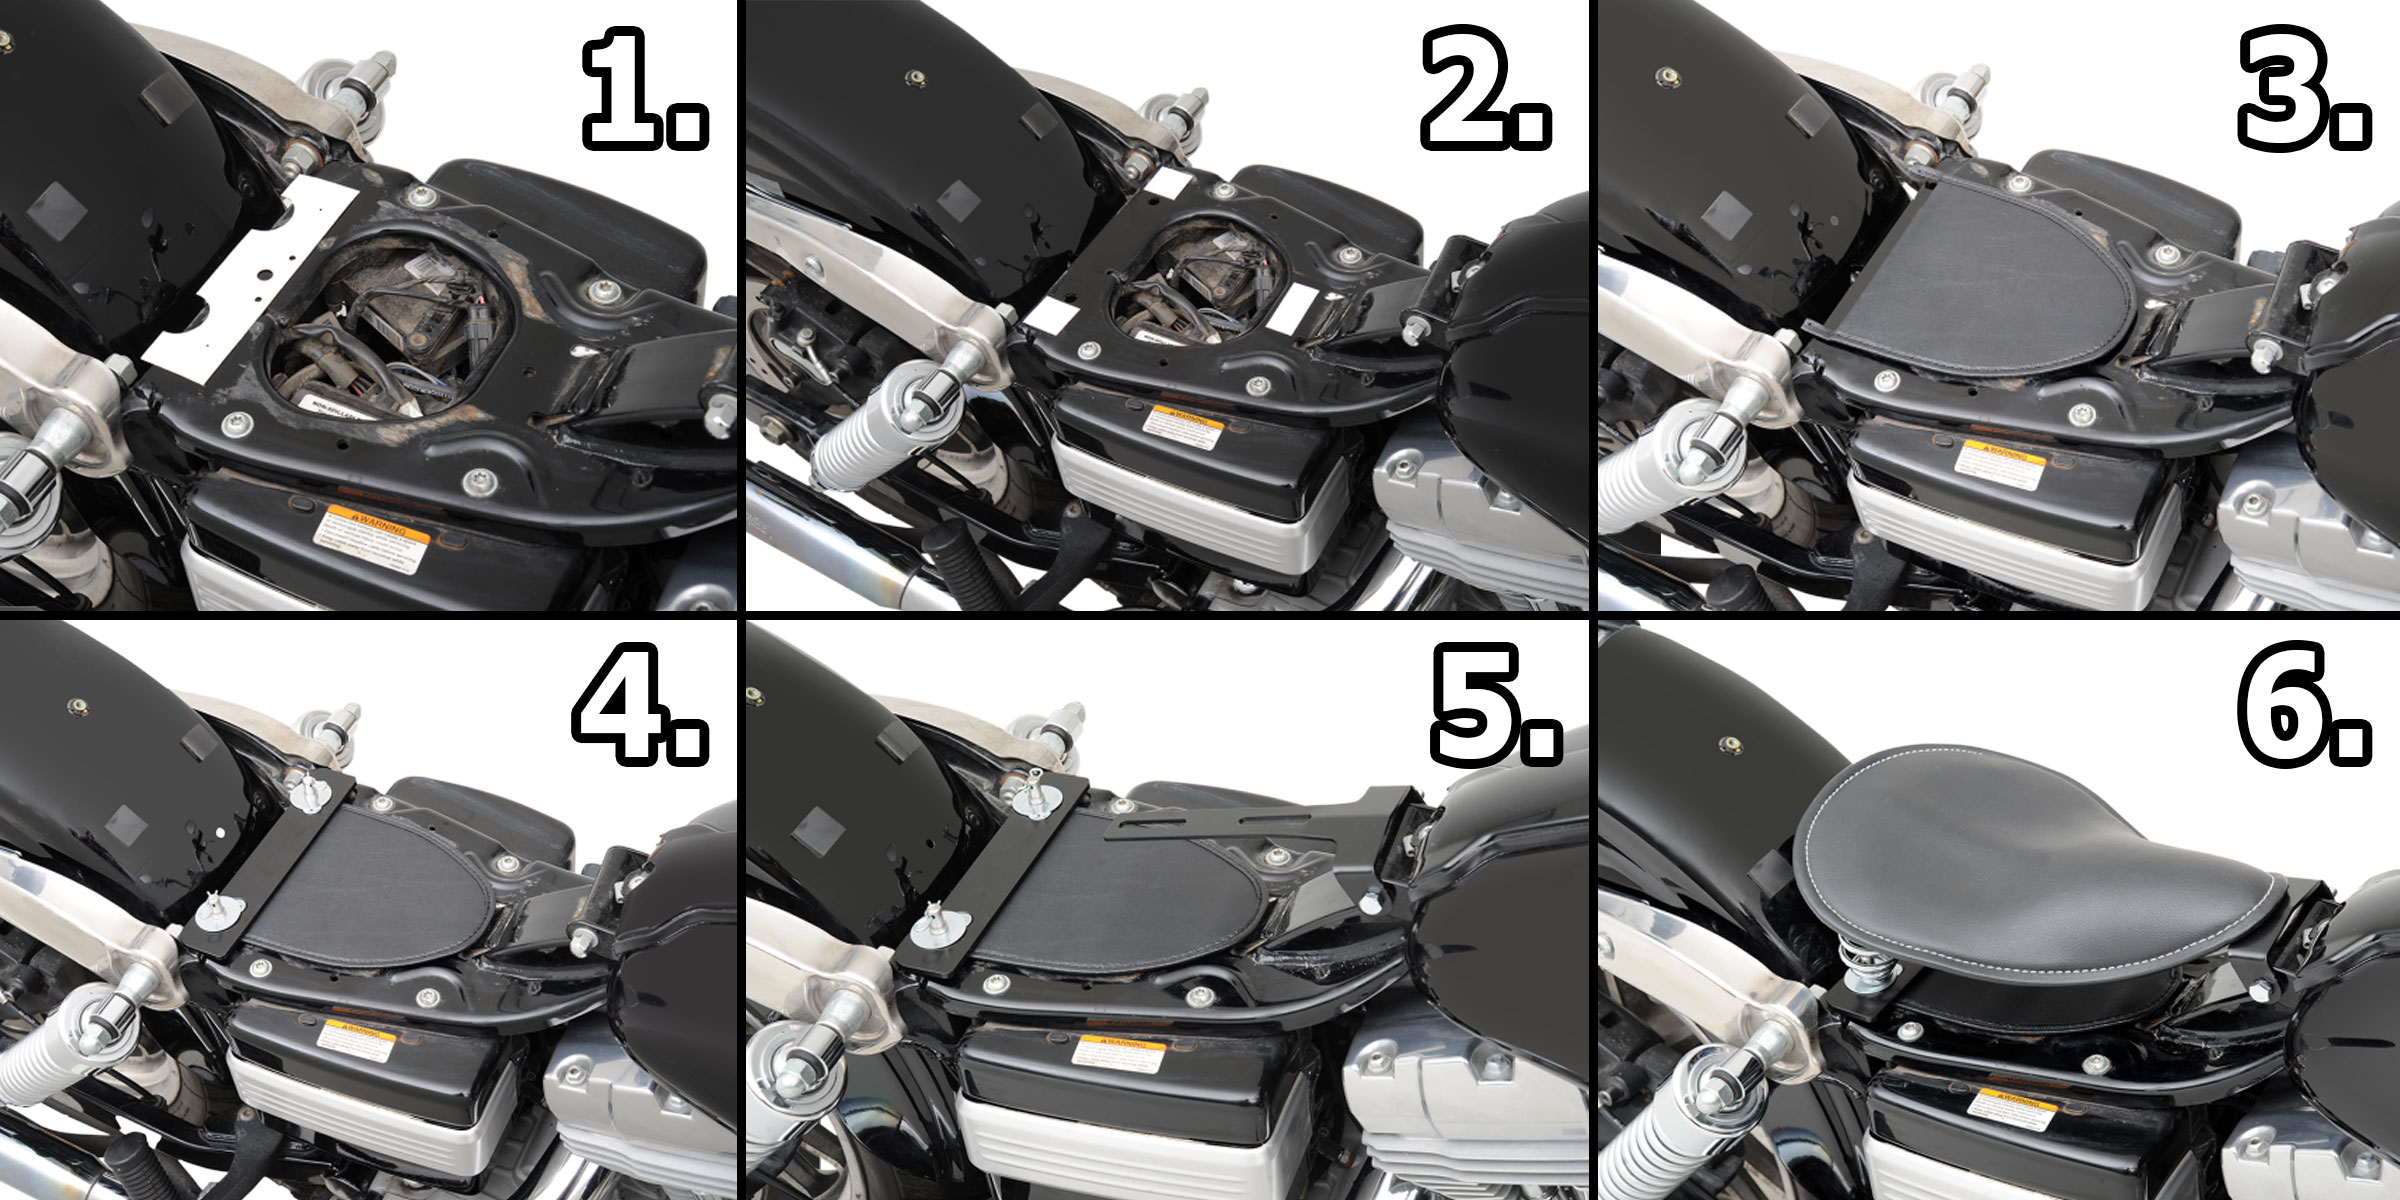 Diy Solo Seat Installation Steps For Harleys And Custom Motorcycles